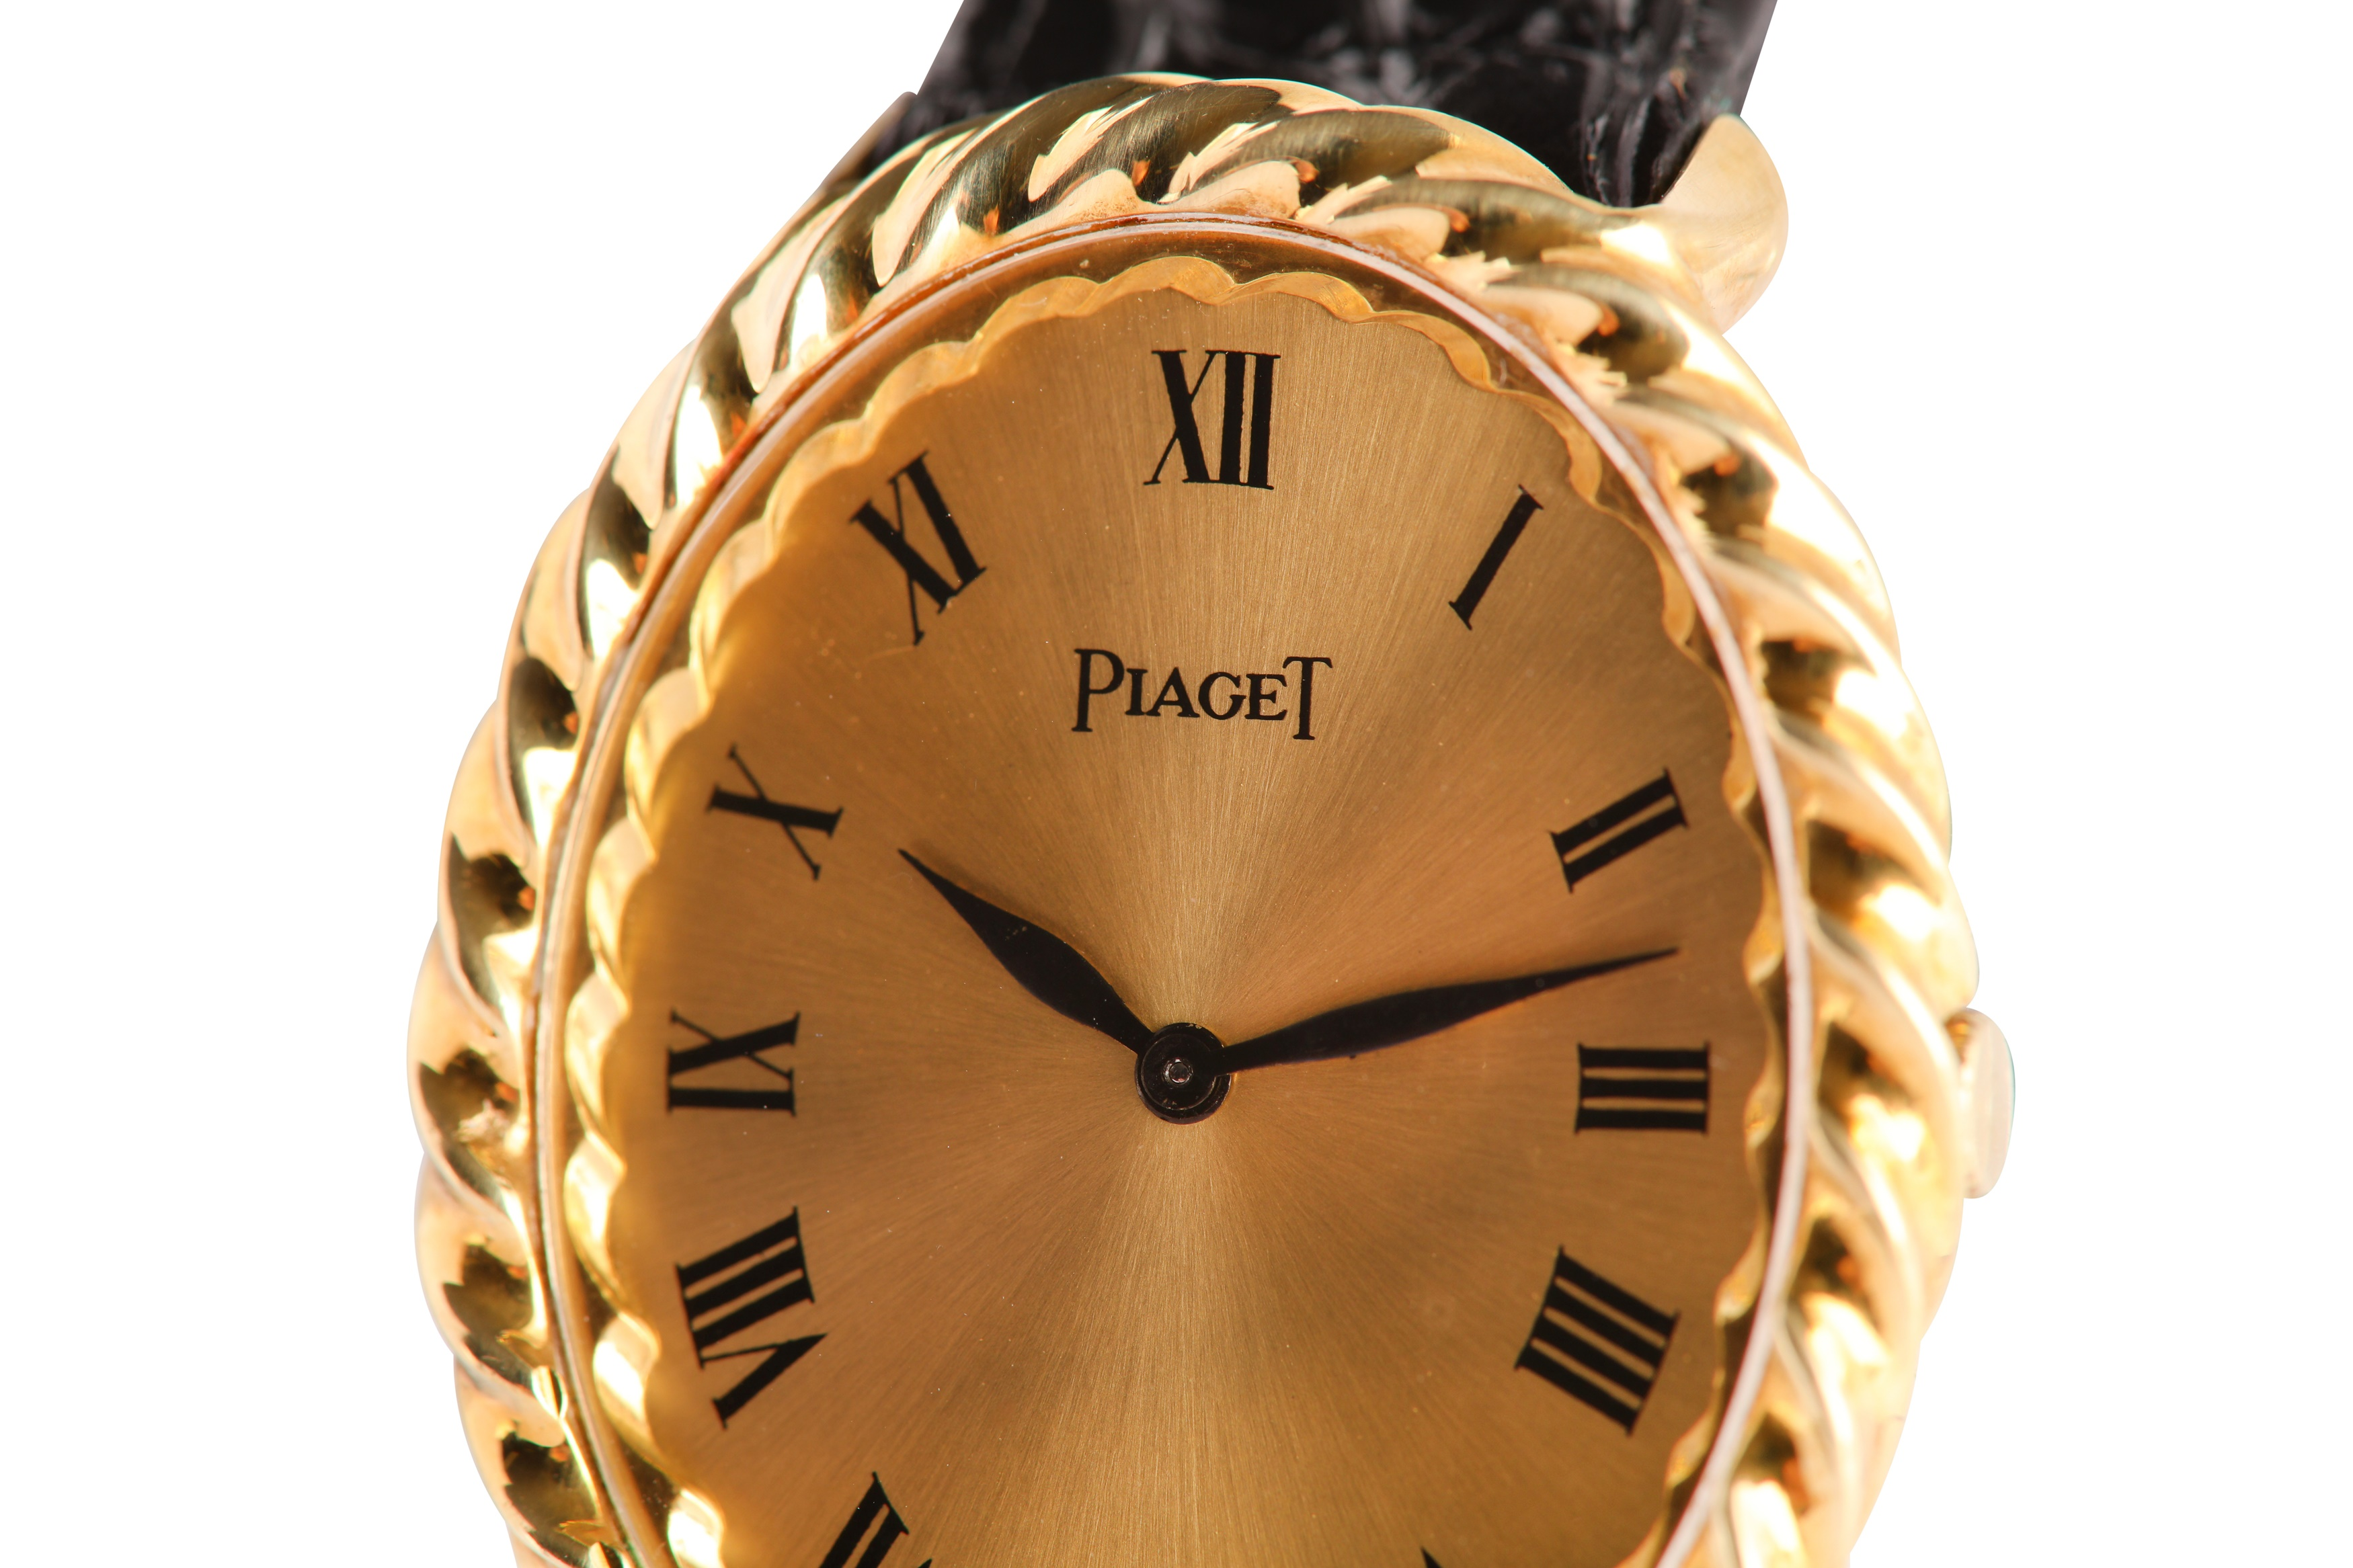 PIAGET. - Image 2 of 4